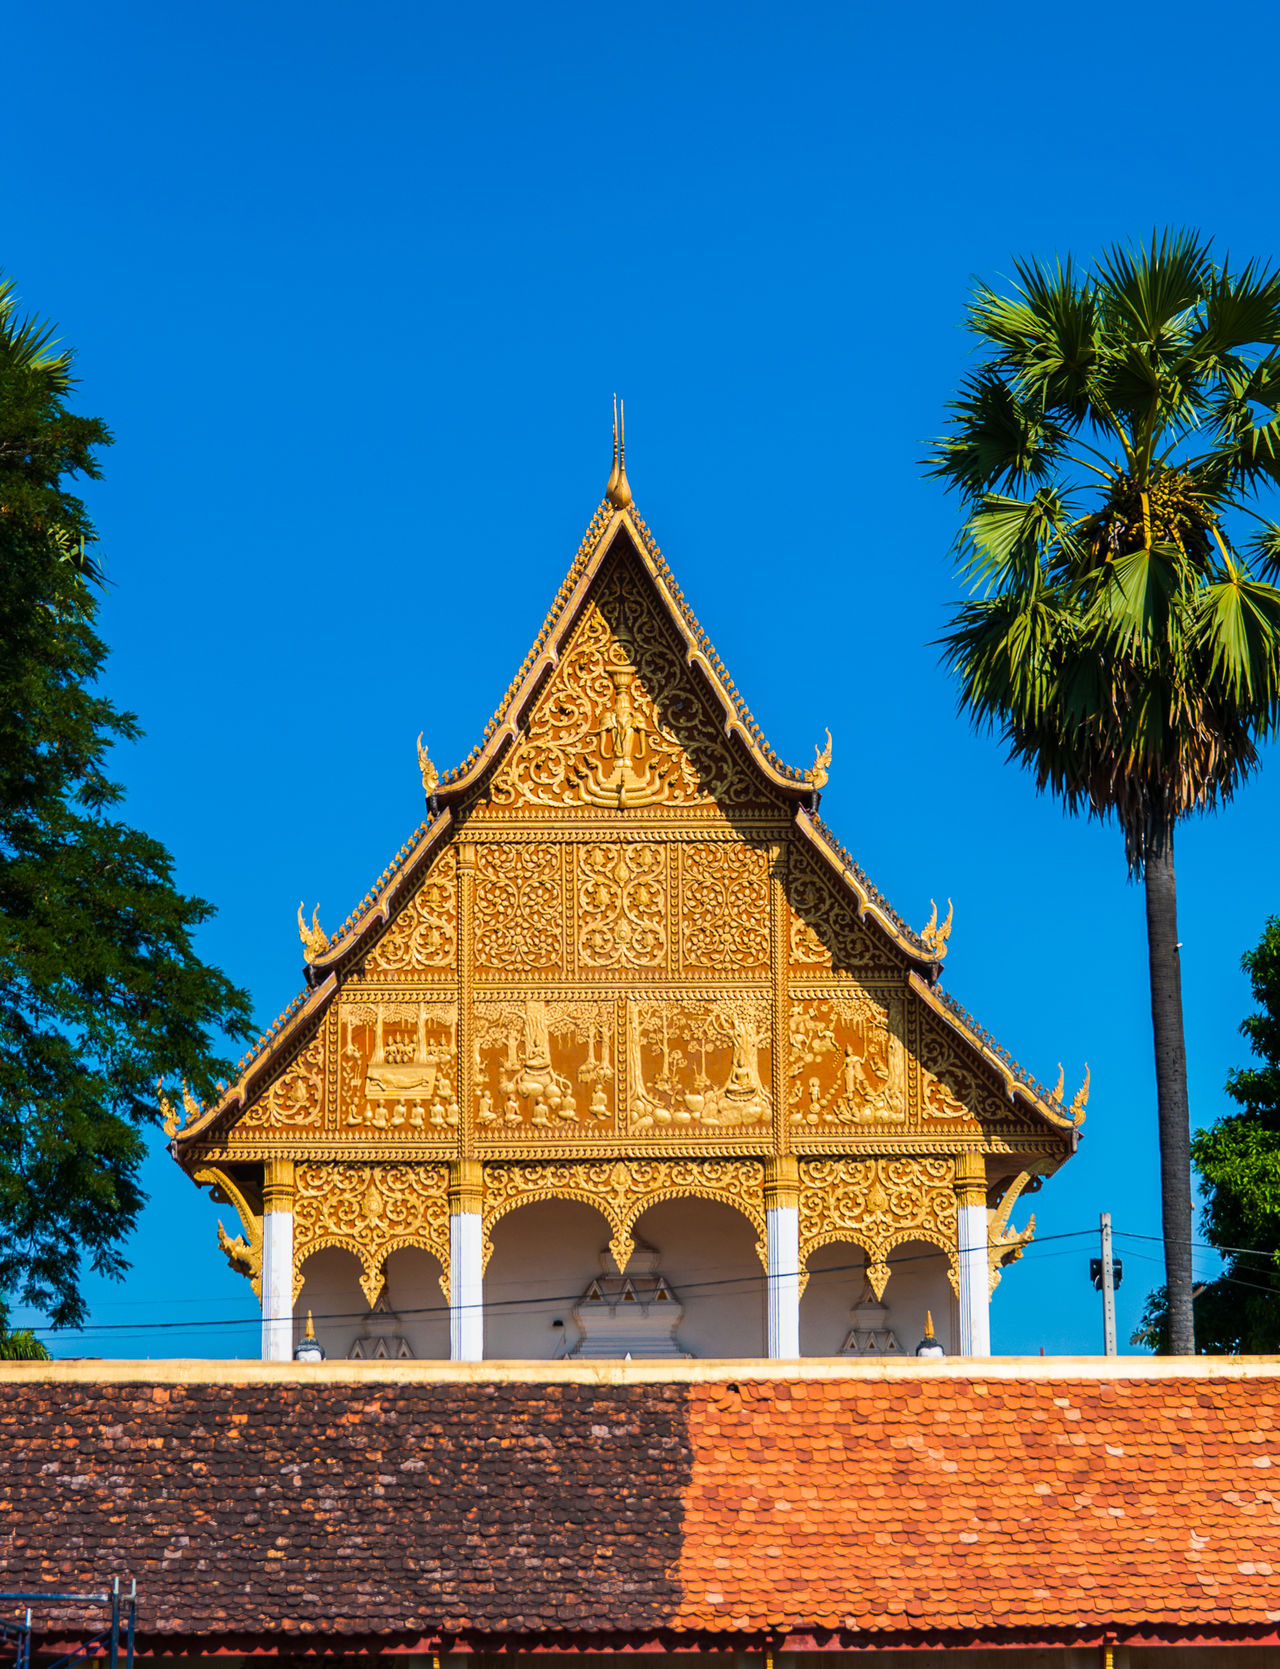 The holy temple of Buddhism in a bright sky atmosphere. Architecture Baked Clay Blue Buddhism Building Exterior Built Structure Chapel Clear Sky Day Gable Gold Colored Isosceles Low Angle View No People Outdoors Page Palm Tree Pattern Place Of Worship Roof Sanctuary  Sky Terracotta Tree